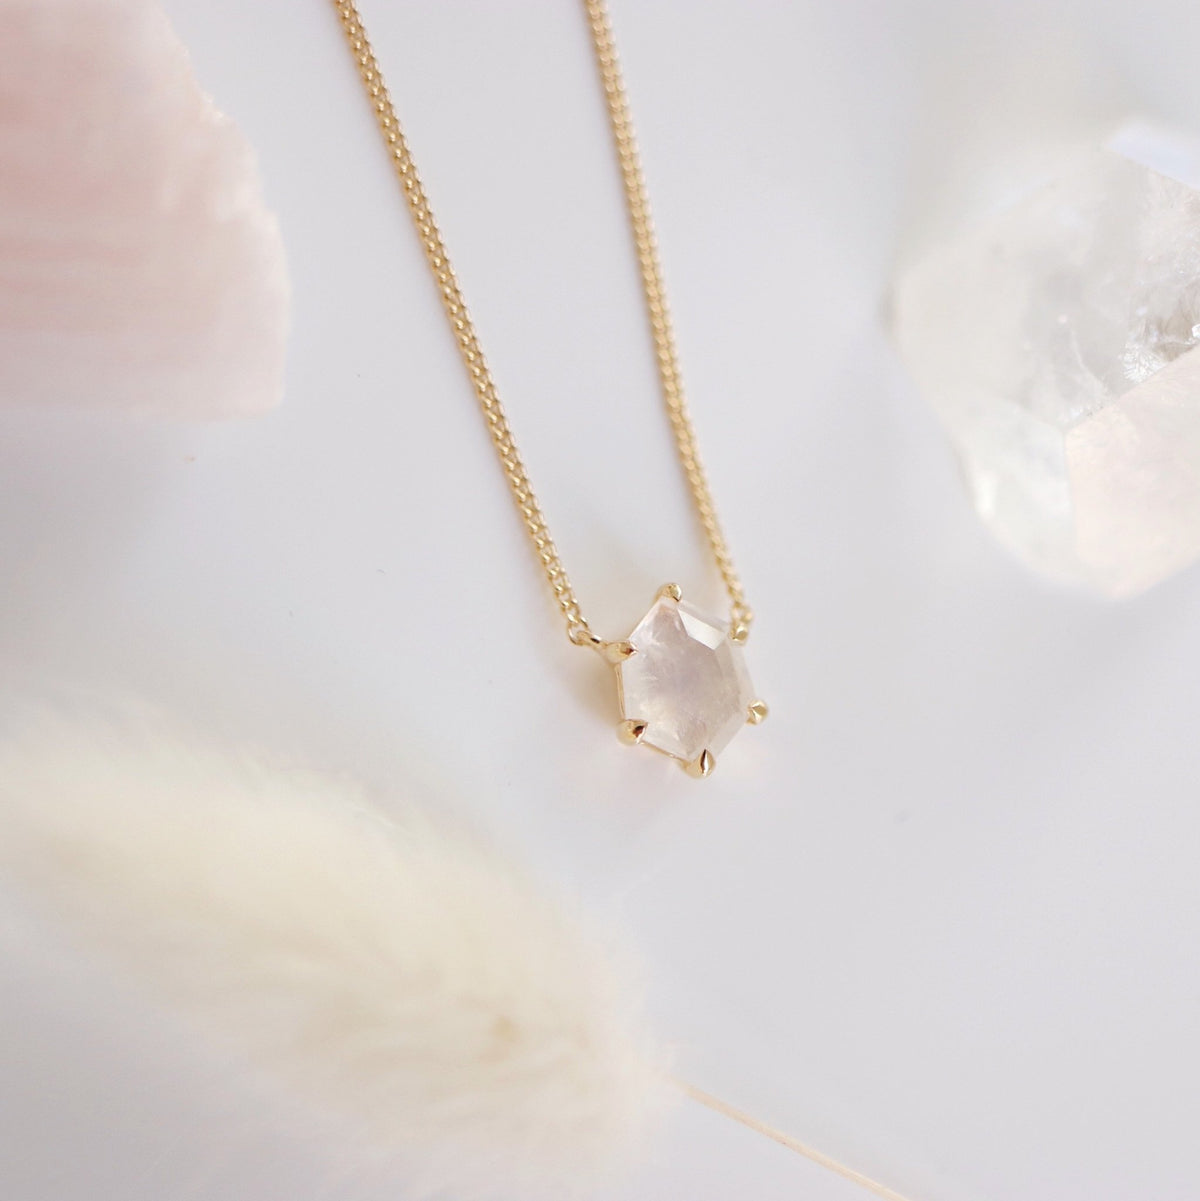 MINI HONOUR NECKLACE - RAINBOW MOONSTONE & GOLD - SO PRETTY CARA COTTER